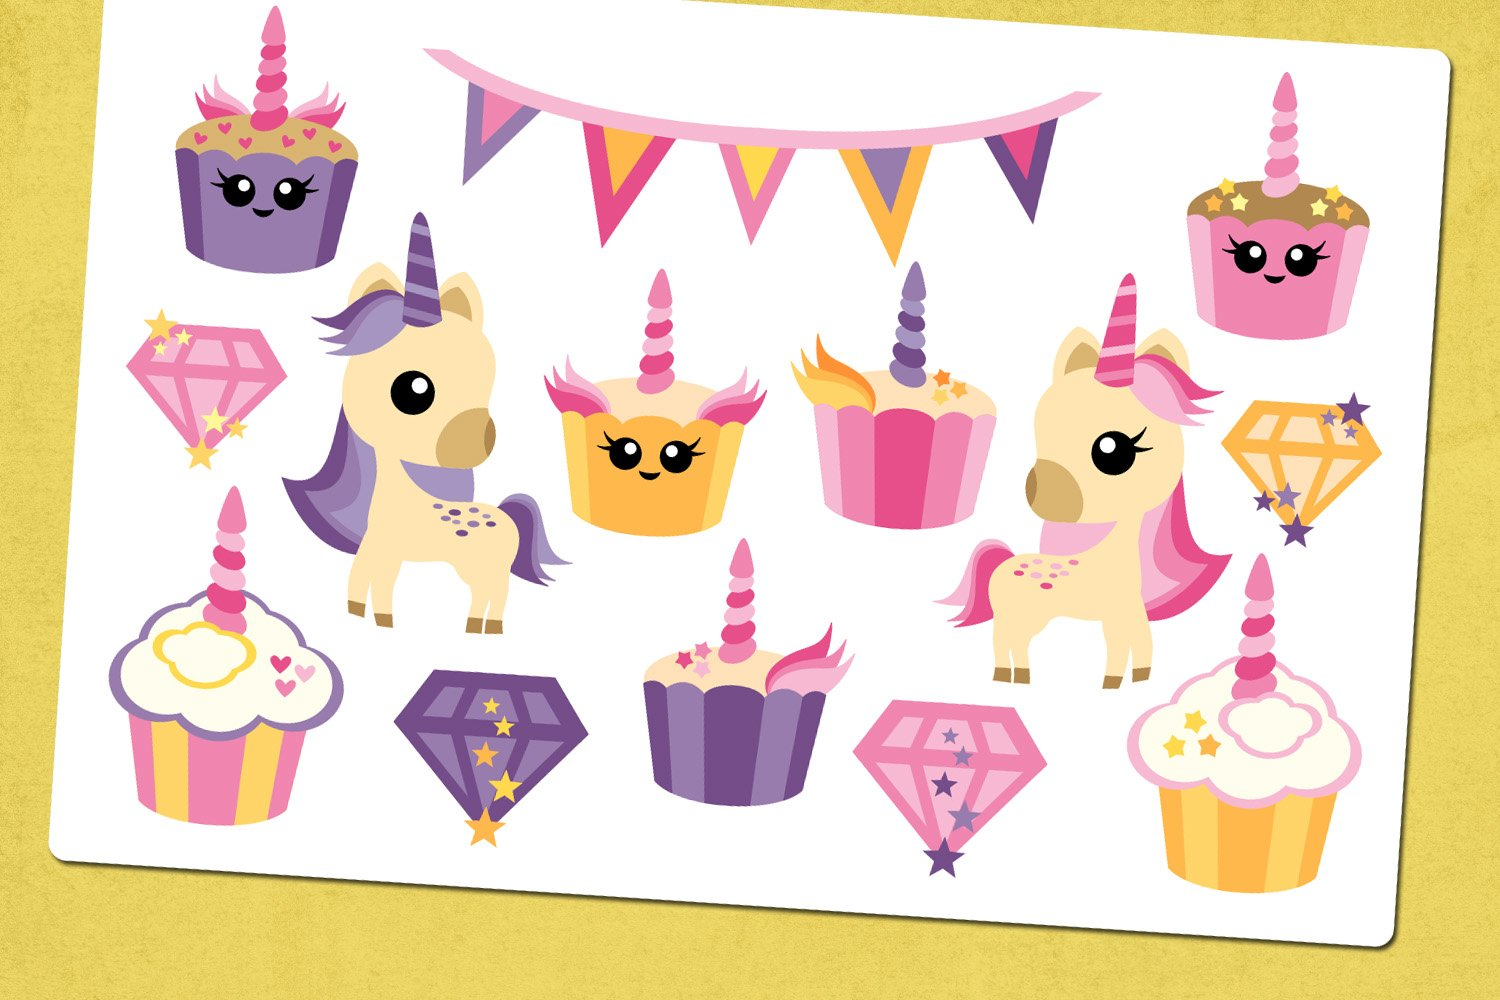 Unicorn cupcakes party illustrations example image 2